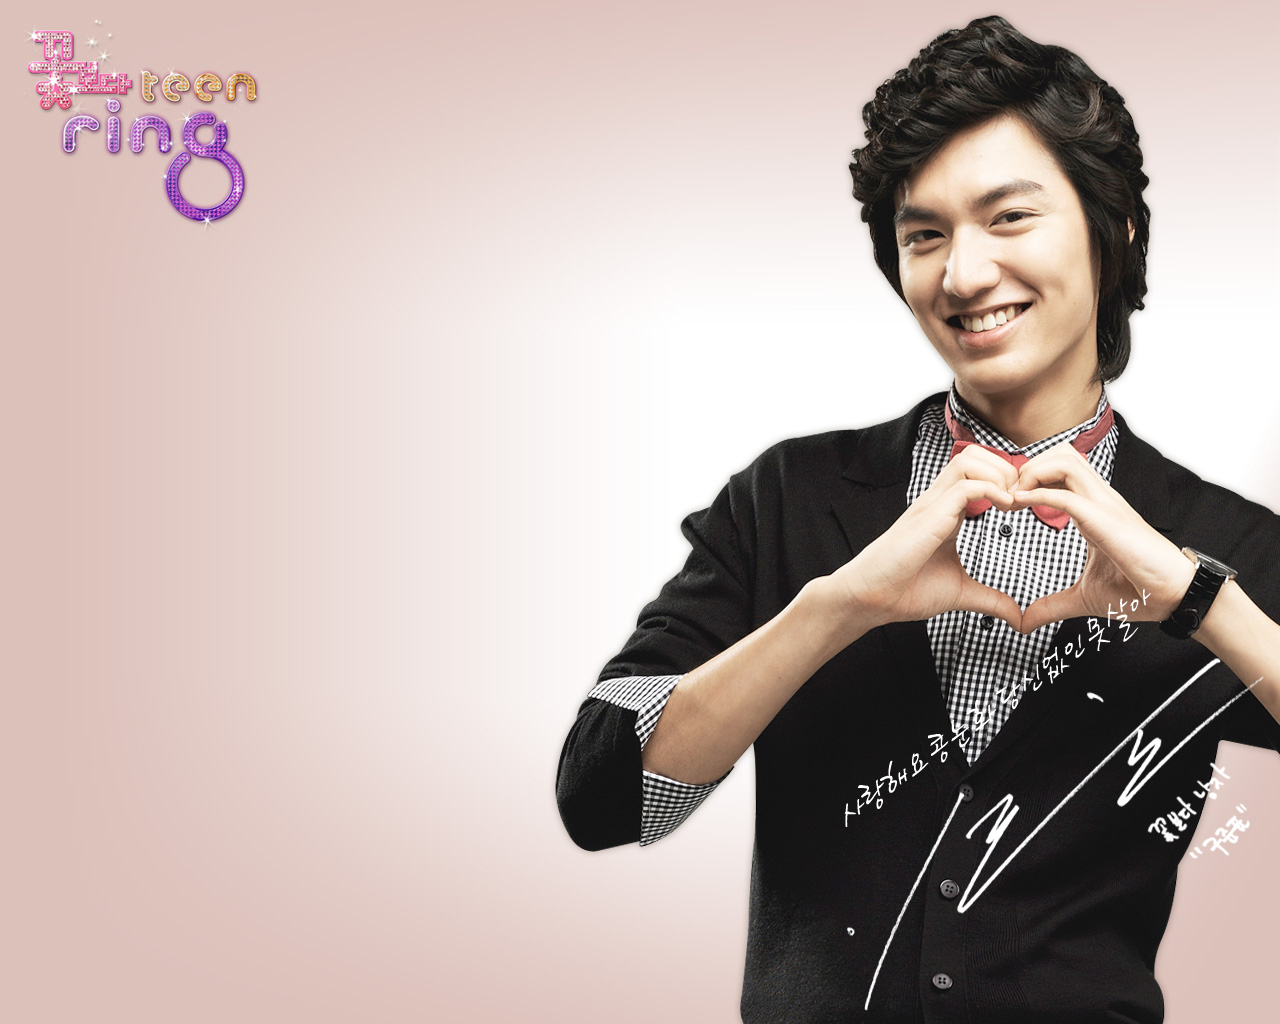 Lee Min Ho love